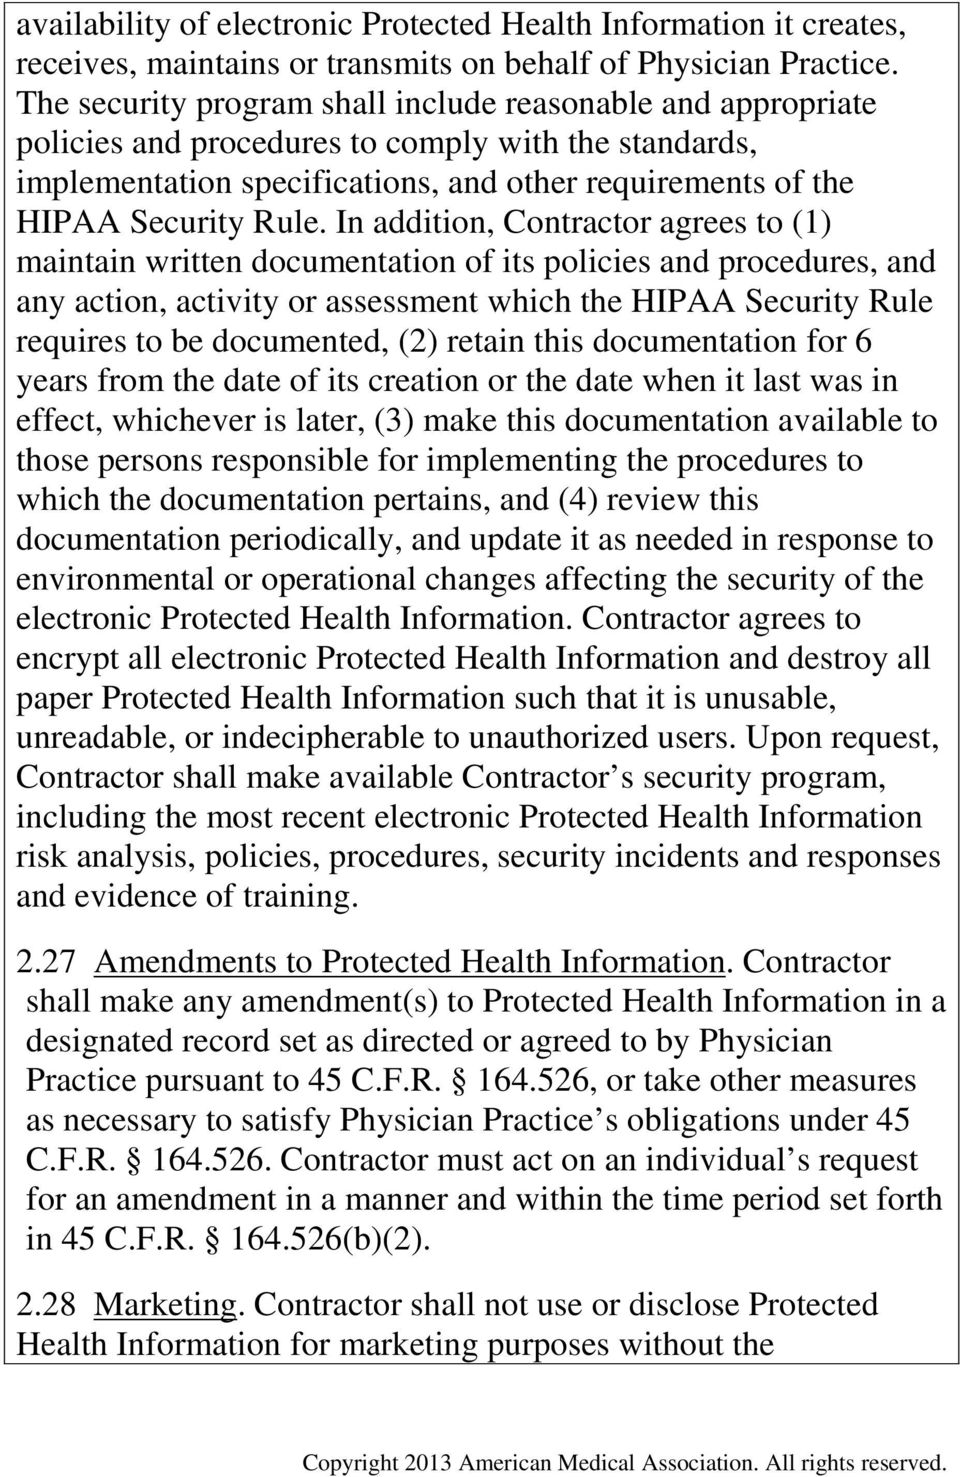 In addition, Contractor agrees to (1) maintain written documentation of its policies and procedures, and any action, activity or assessment which the HIPAA Security Rule requires to be documented,